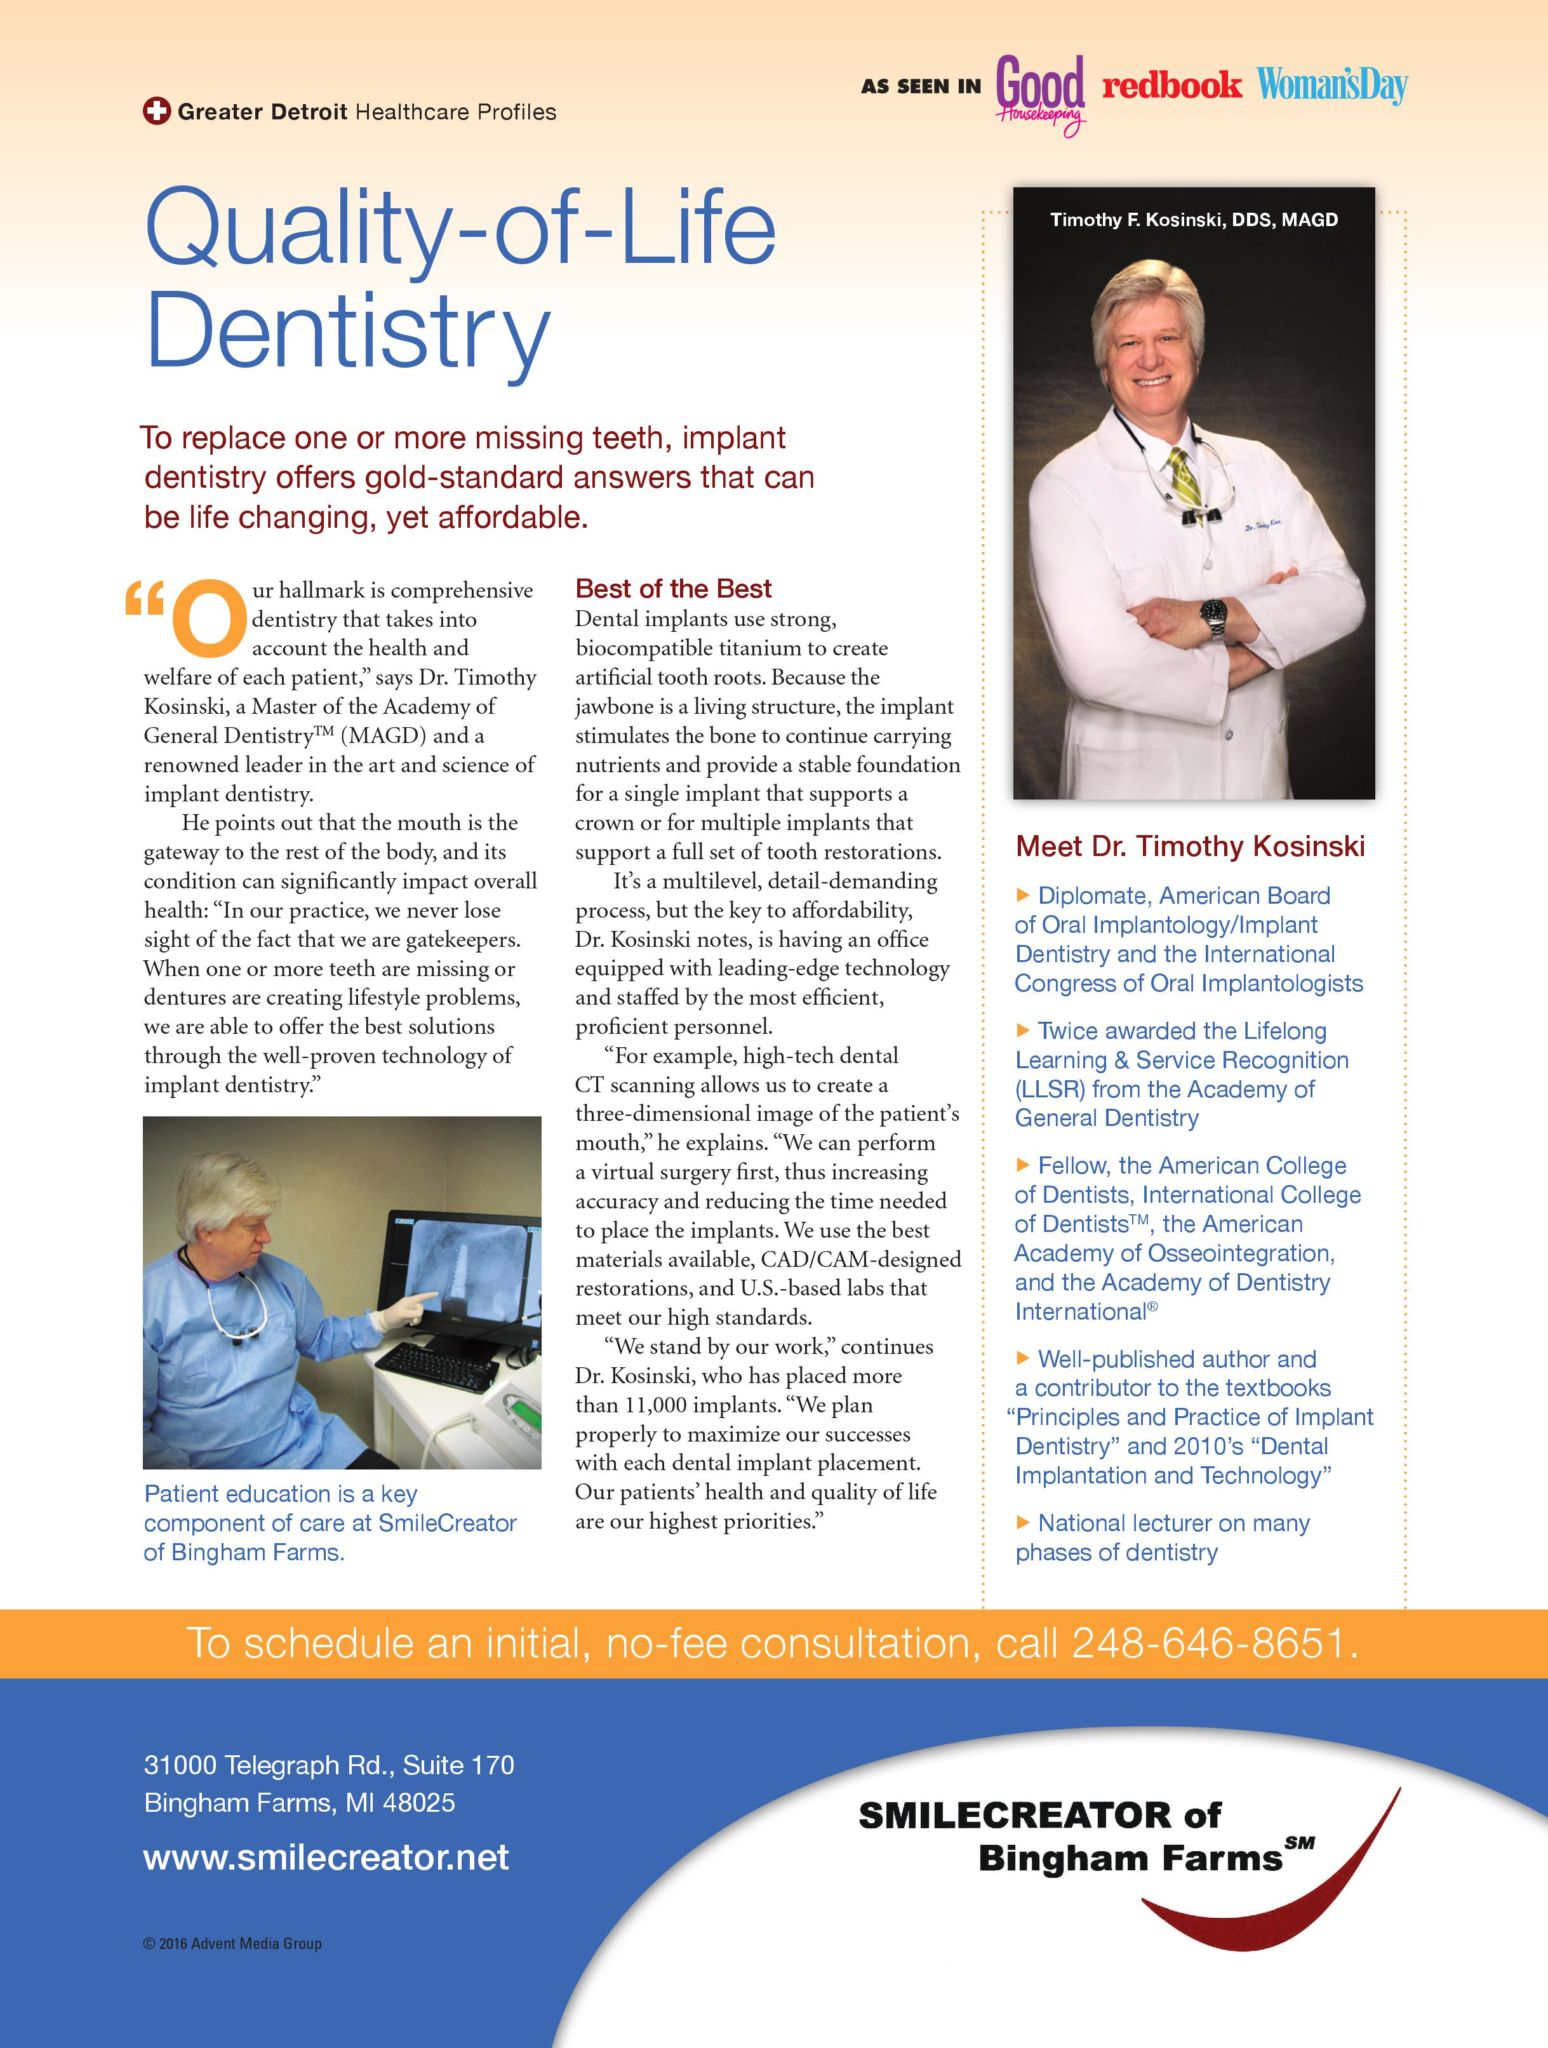 quality of life dentistry with Dr. Kosinski